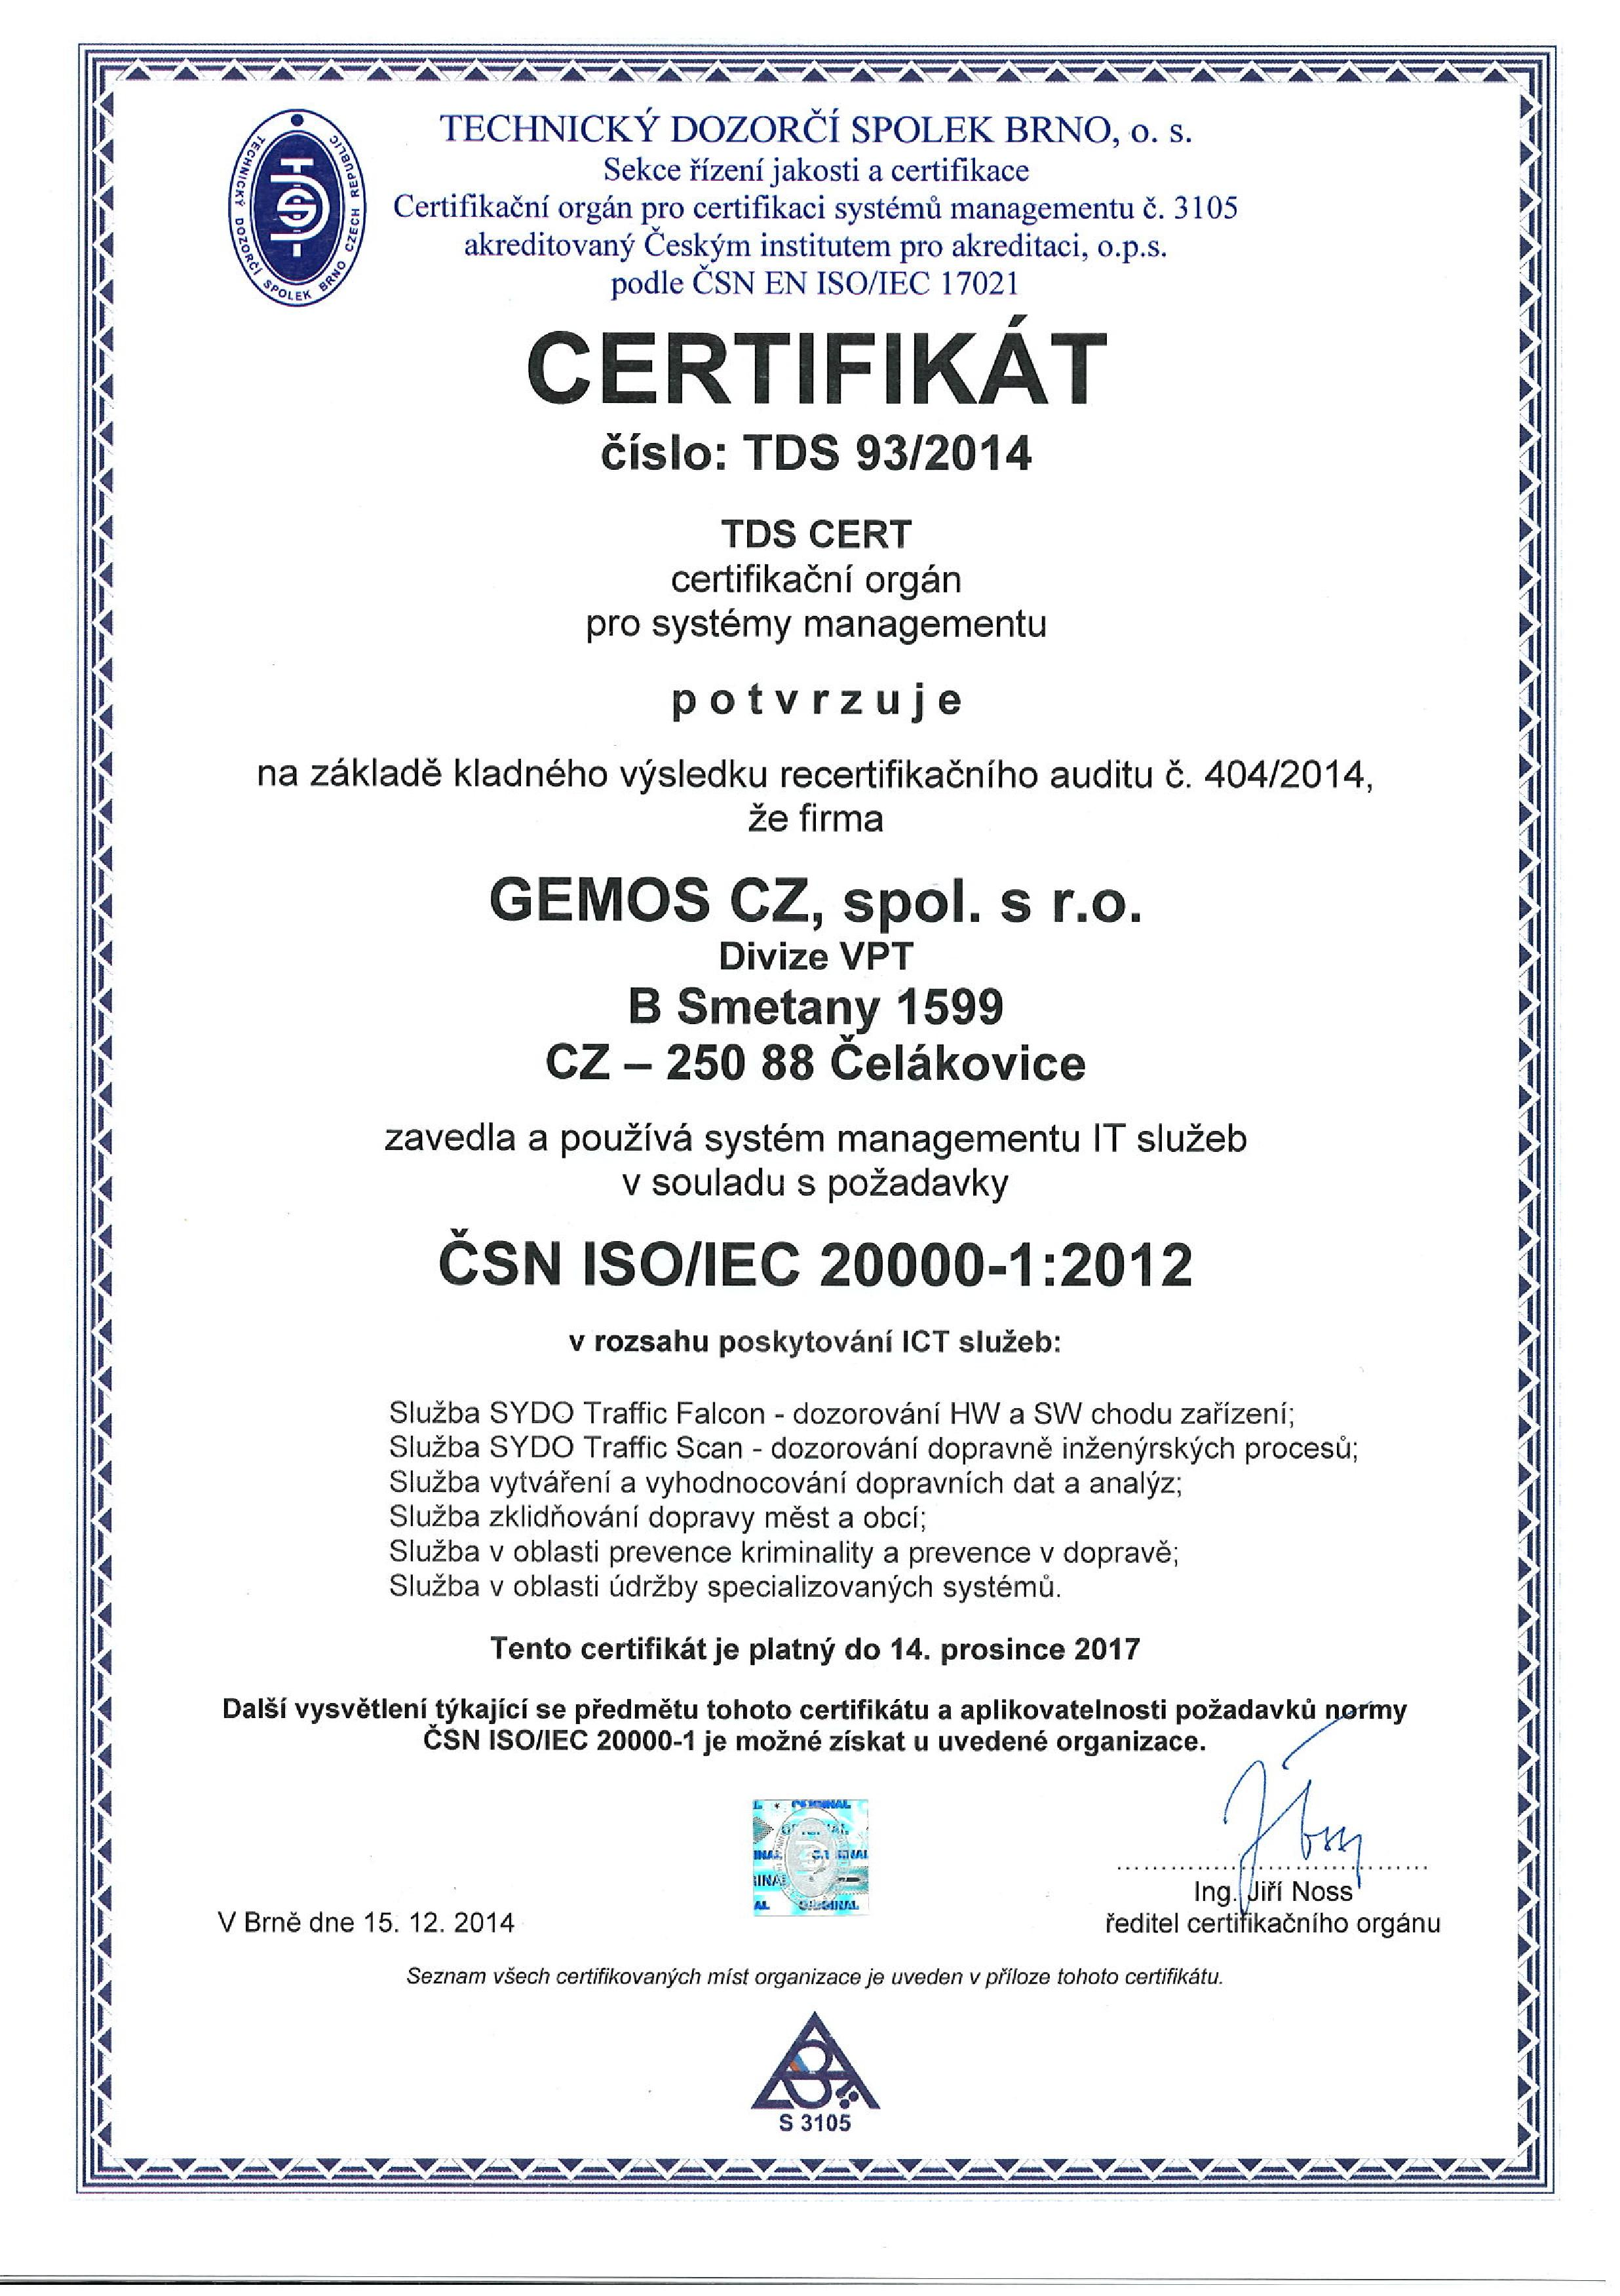 Certificate ČSN ISO/IEC 20 000-1 granted to GEMOS CZ company